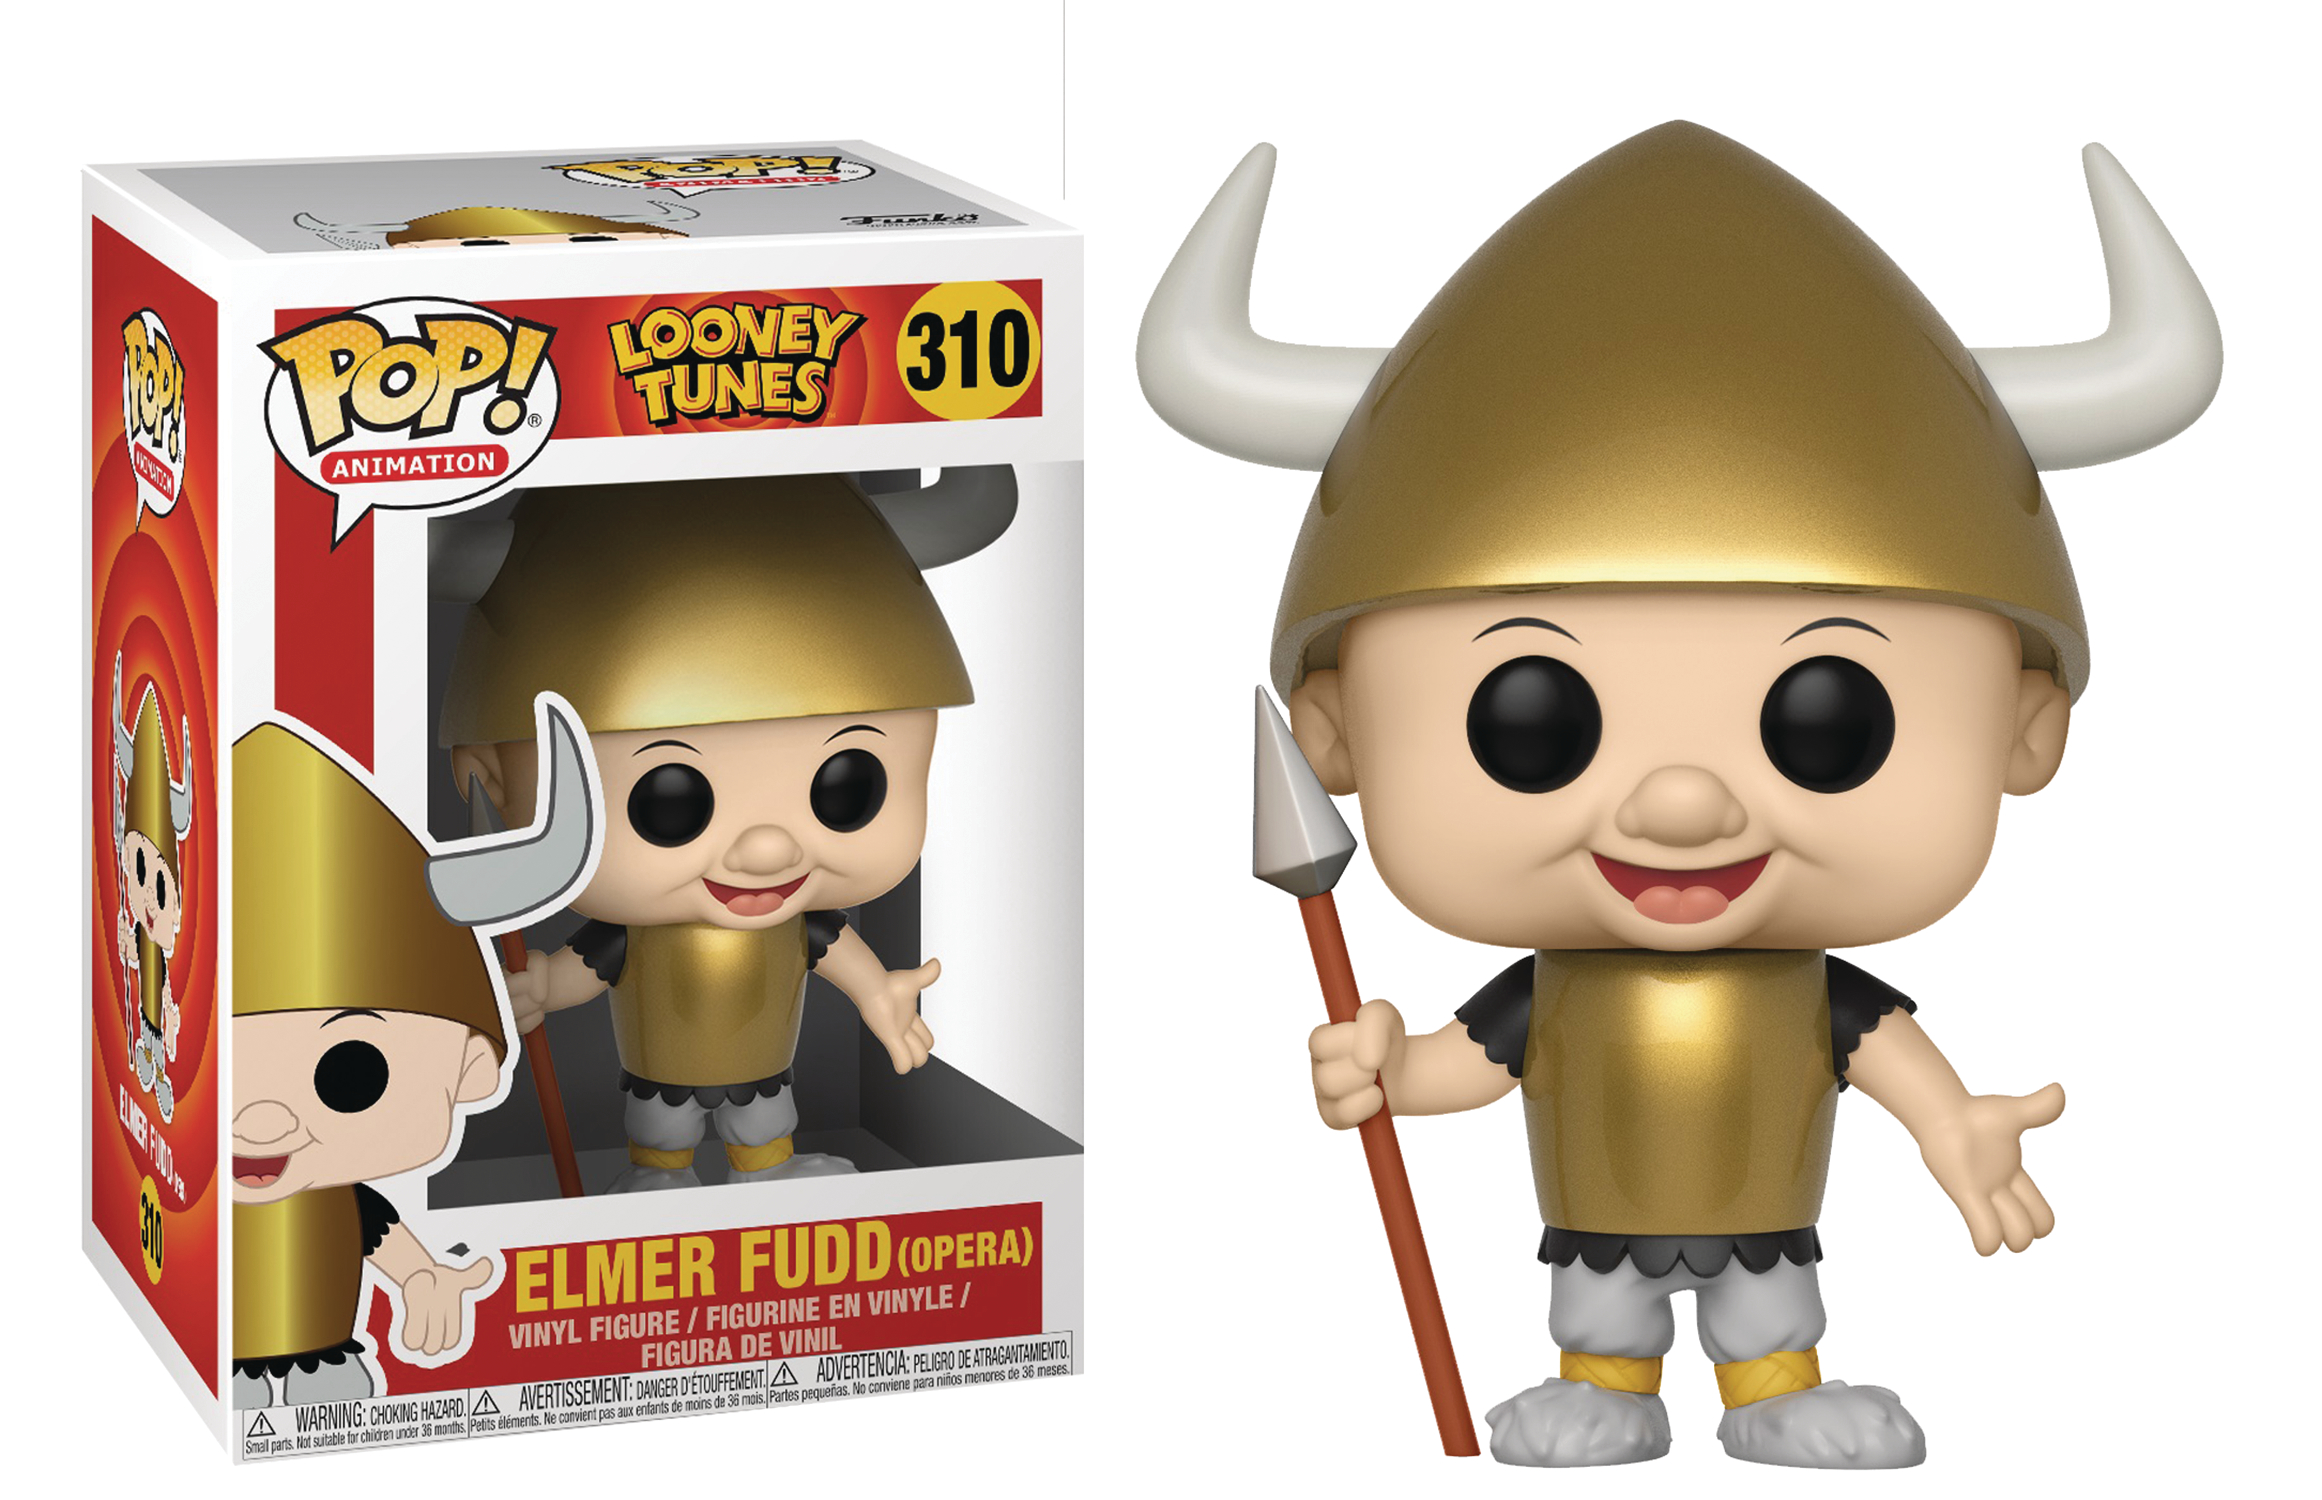 POP LOONEY TUNES ELMER FUDD VIKING VINYL FIGURE